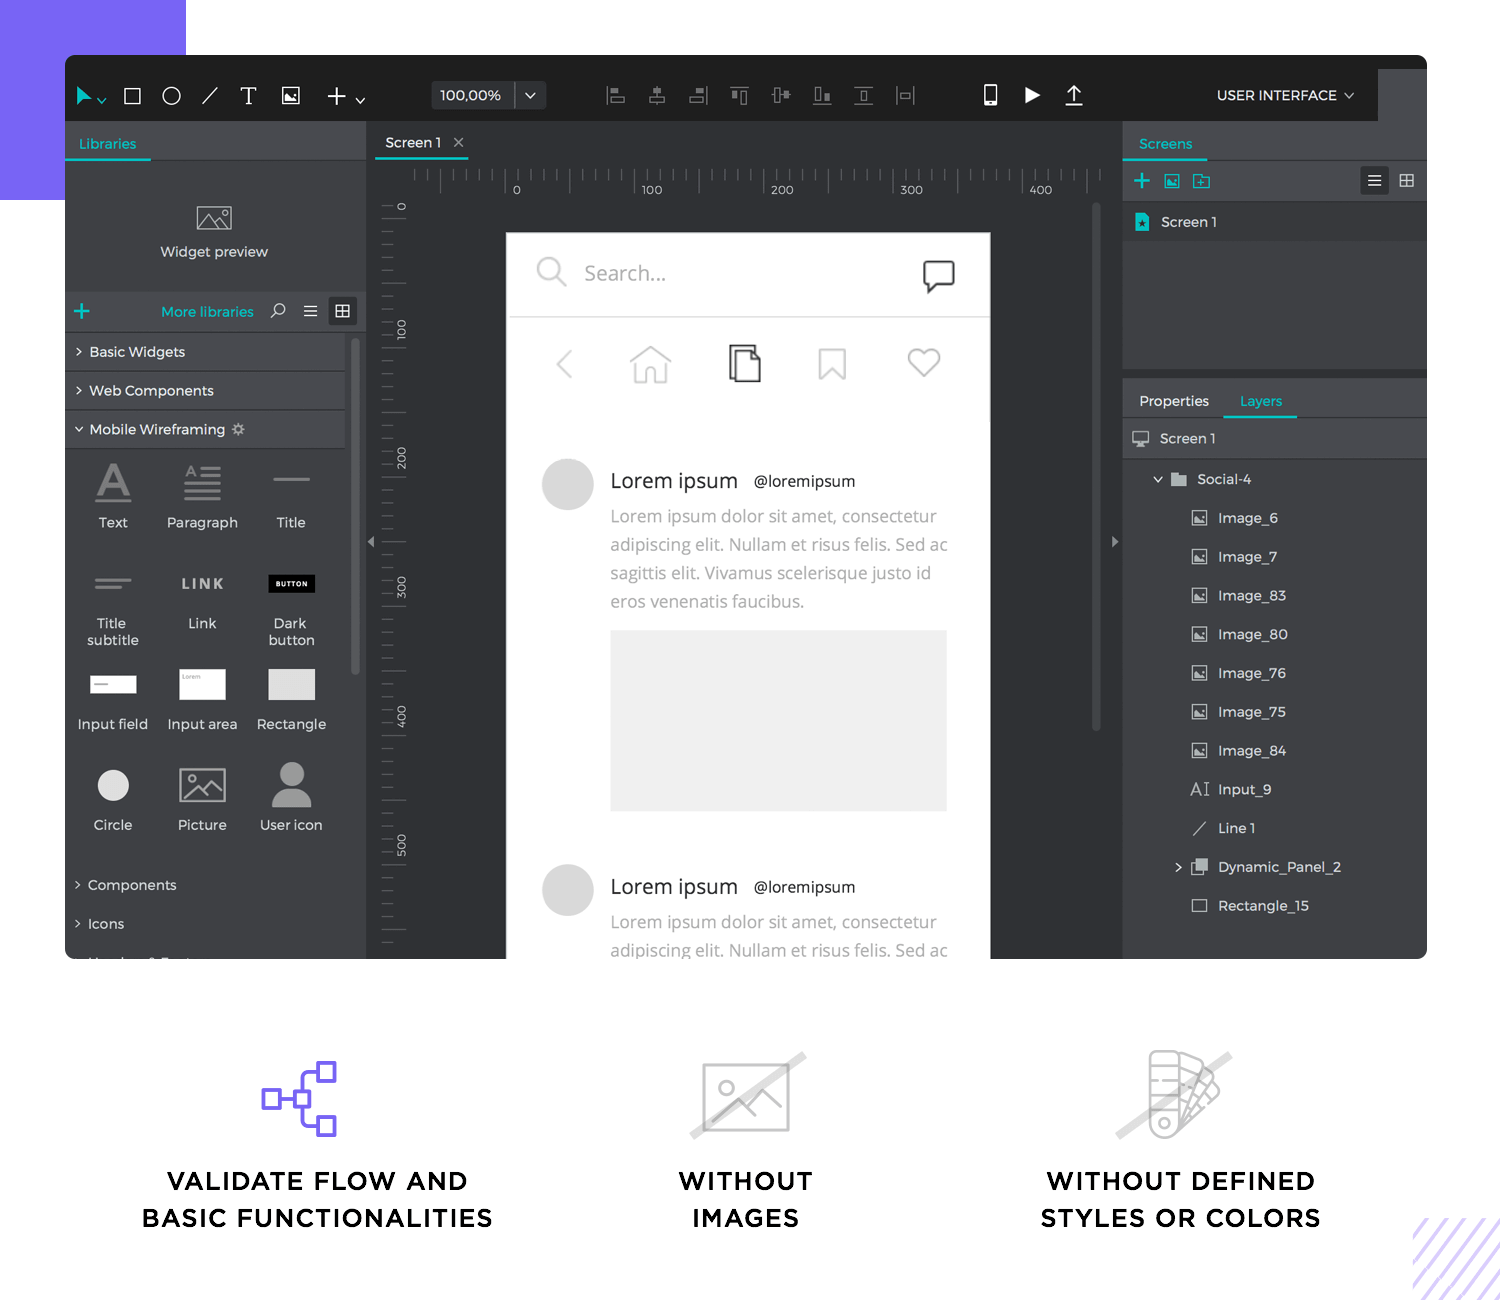 wireframes are always about functionality, not style